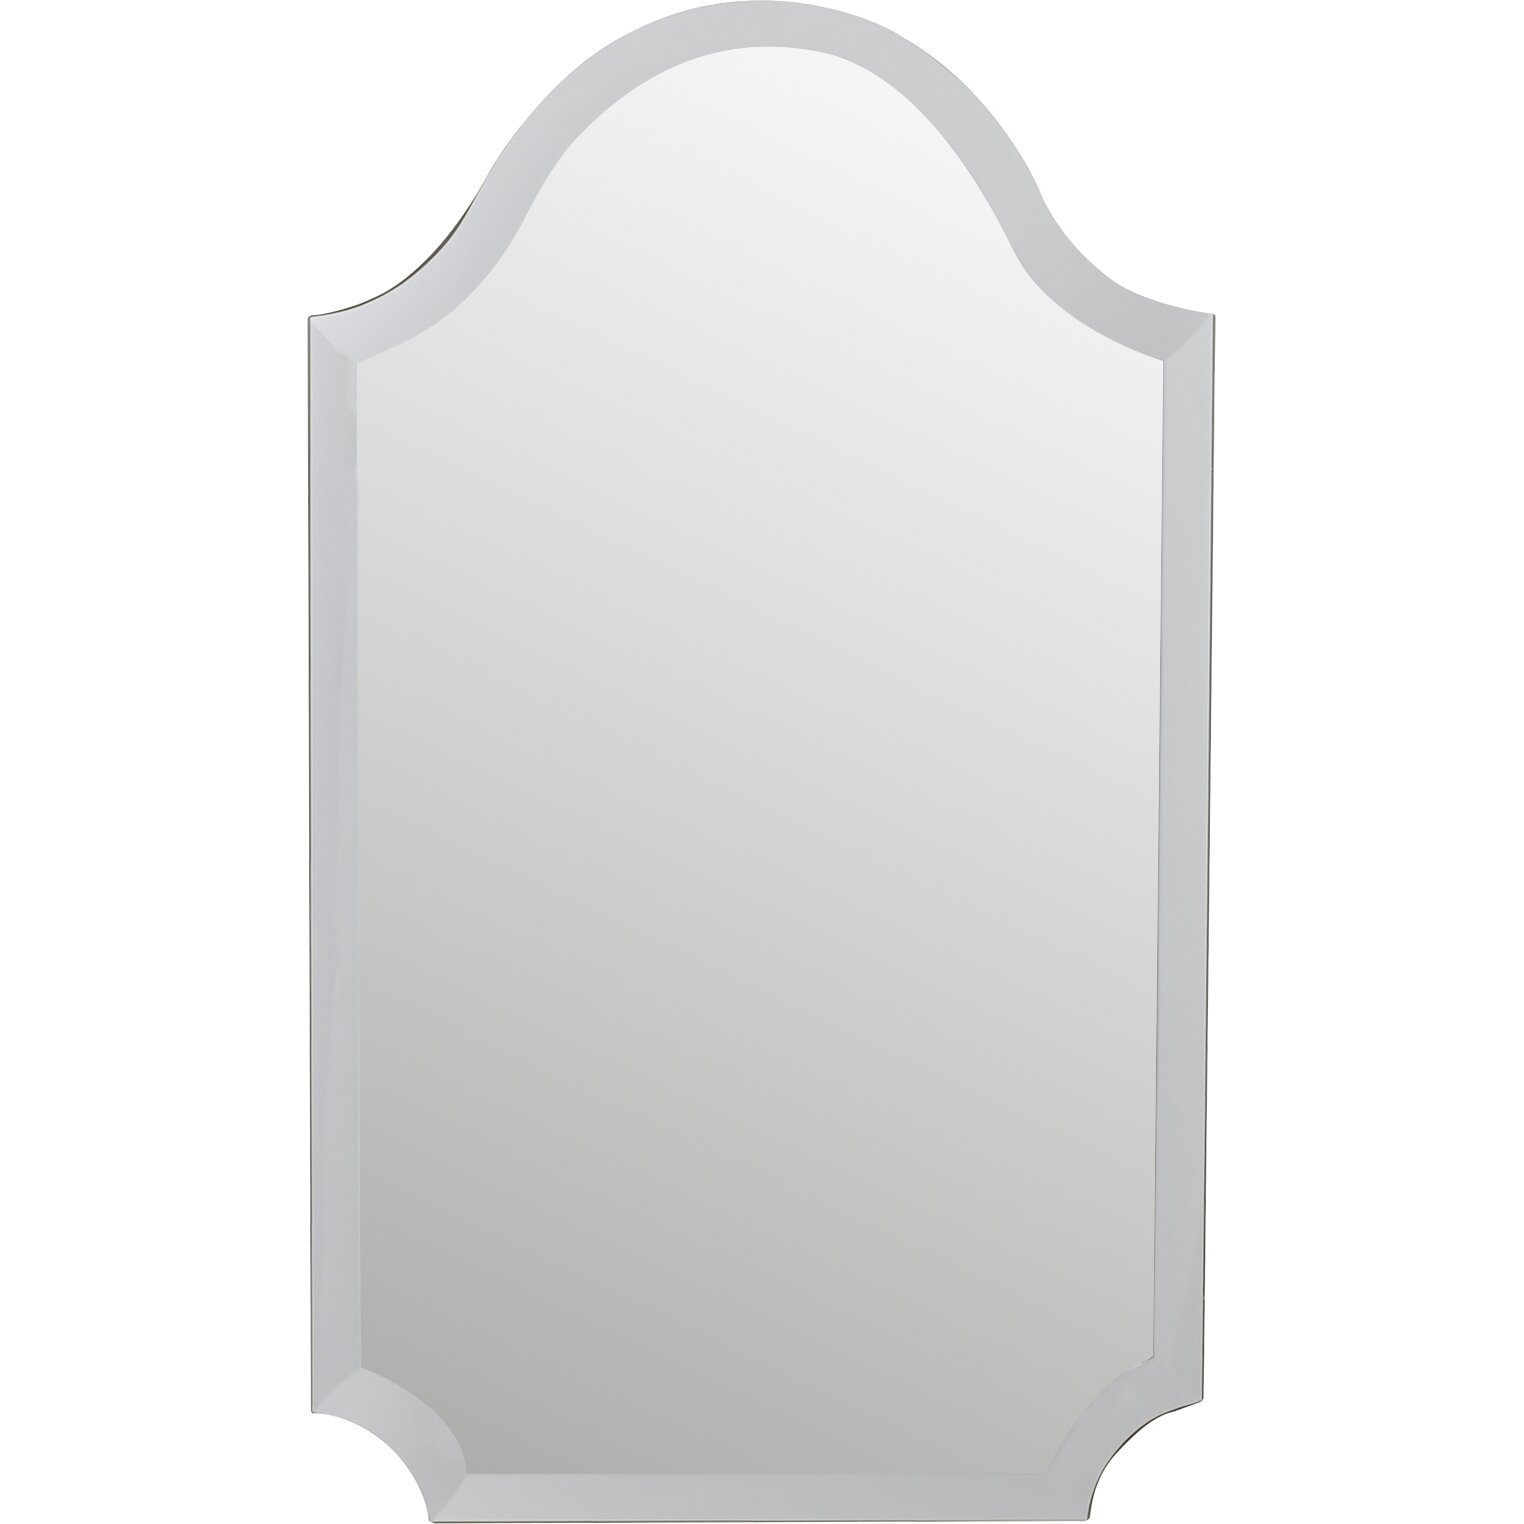 Mercer41 tall arched scalloped wall mirror reviews wayfair for Tall glass mirror